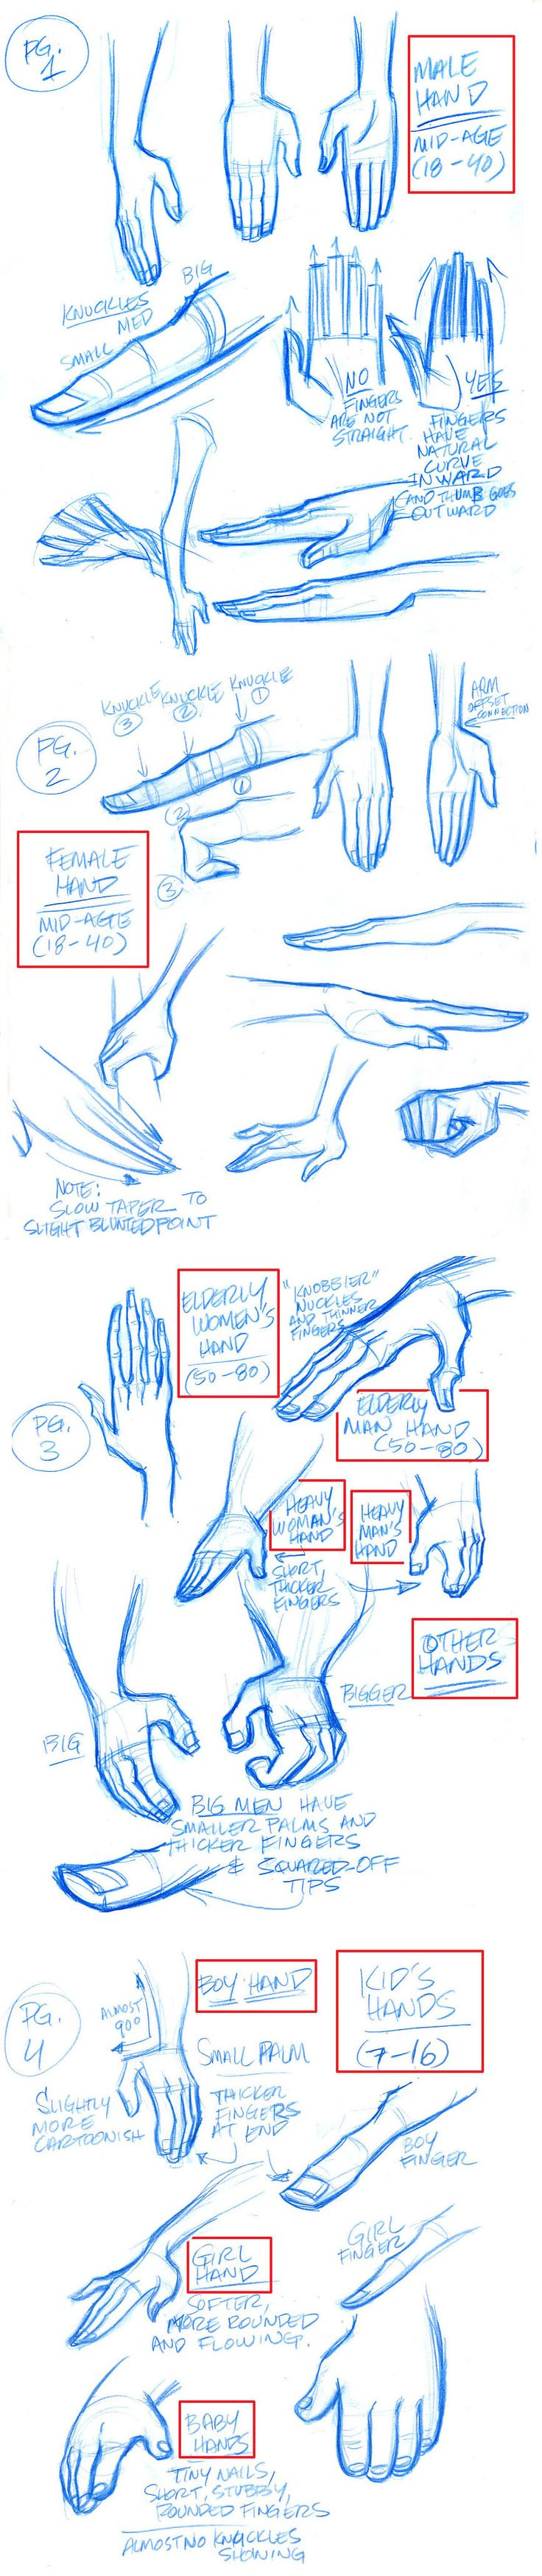 Stylized Hands model sheets by tombancroft on deviantART (http://tombancroft.deviantart.com/art/Stylized-Hands-model-sheets-417624101) ✤ || CHARACTER DESIGN REFERENCES | キャラクターデザイン |  • Find more at https://www.facebook.com/CharacterDesignReferences & http://www.pinterest.com/characterdesigh and learn how to draw: concept art, bandes dessinées, dessin animé, çizgi film #animation #banda #desenhada #toons #manga #BD #historieta #strip #fumetti #anime #cartoni #animati #comics #cartoon || ✤